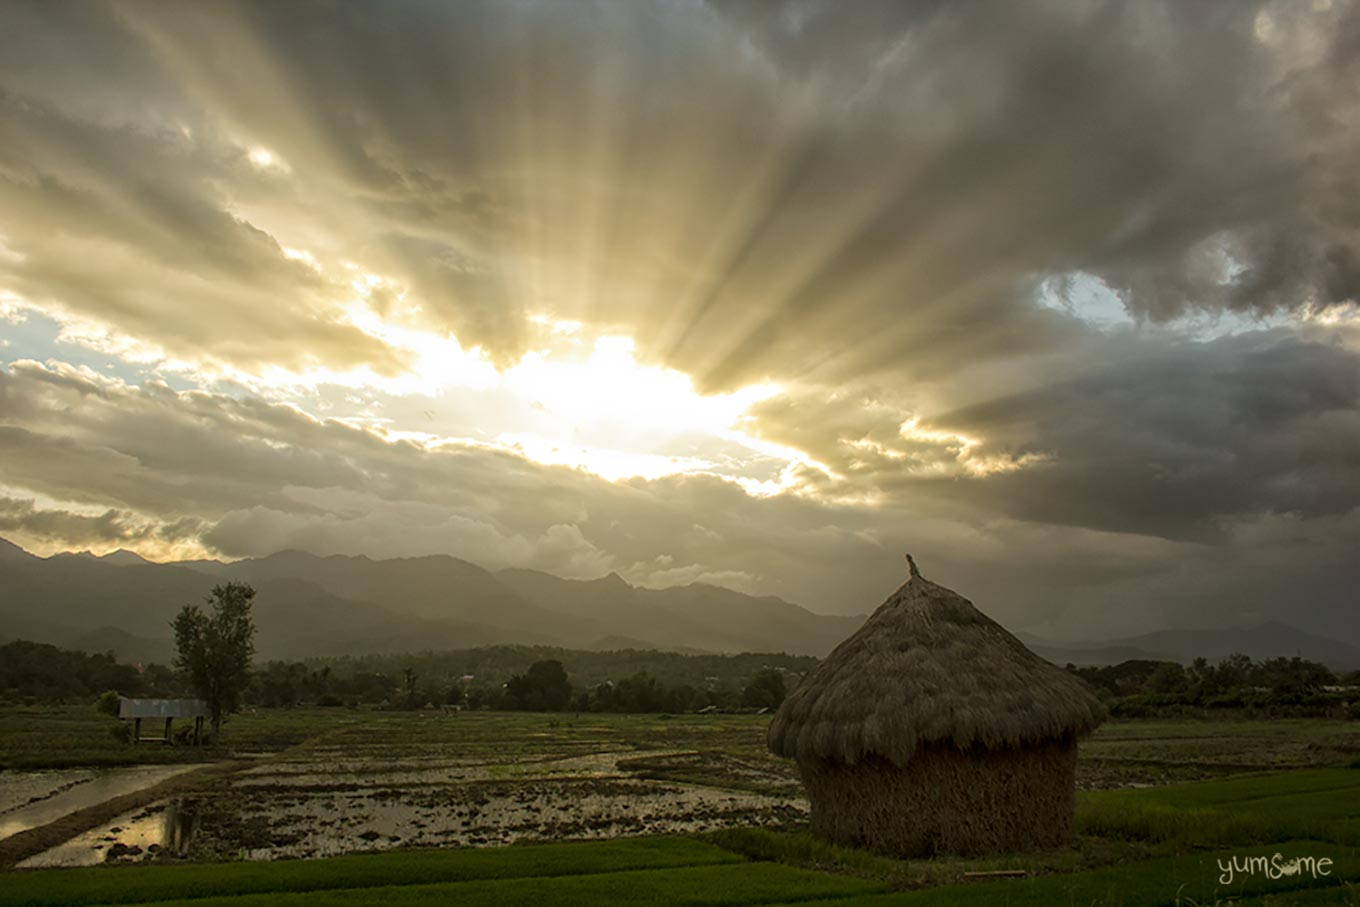 A haystack in a rice field at sunset, with sun rays coming through a break in the cloud.